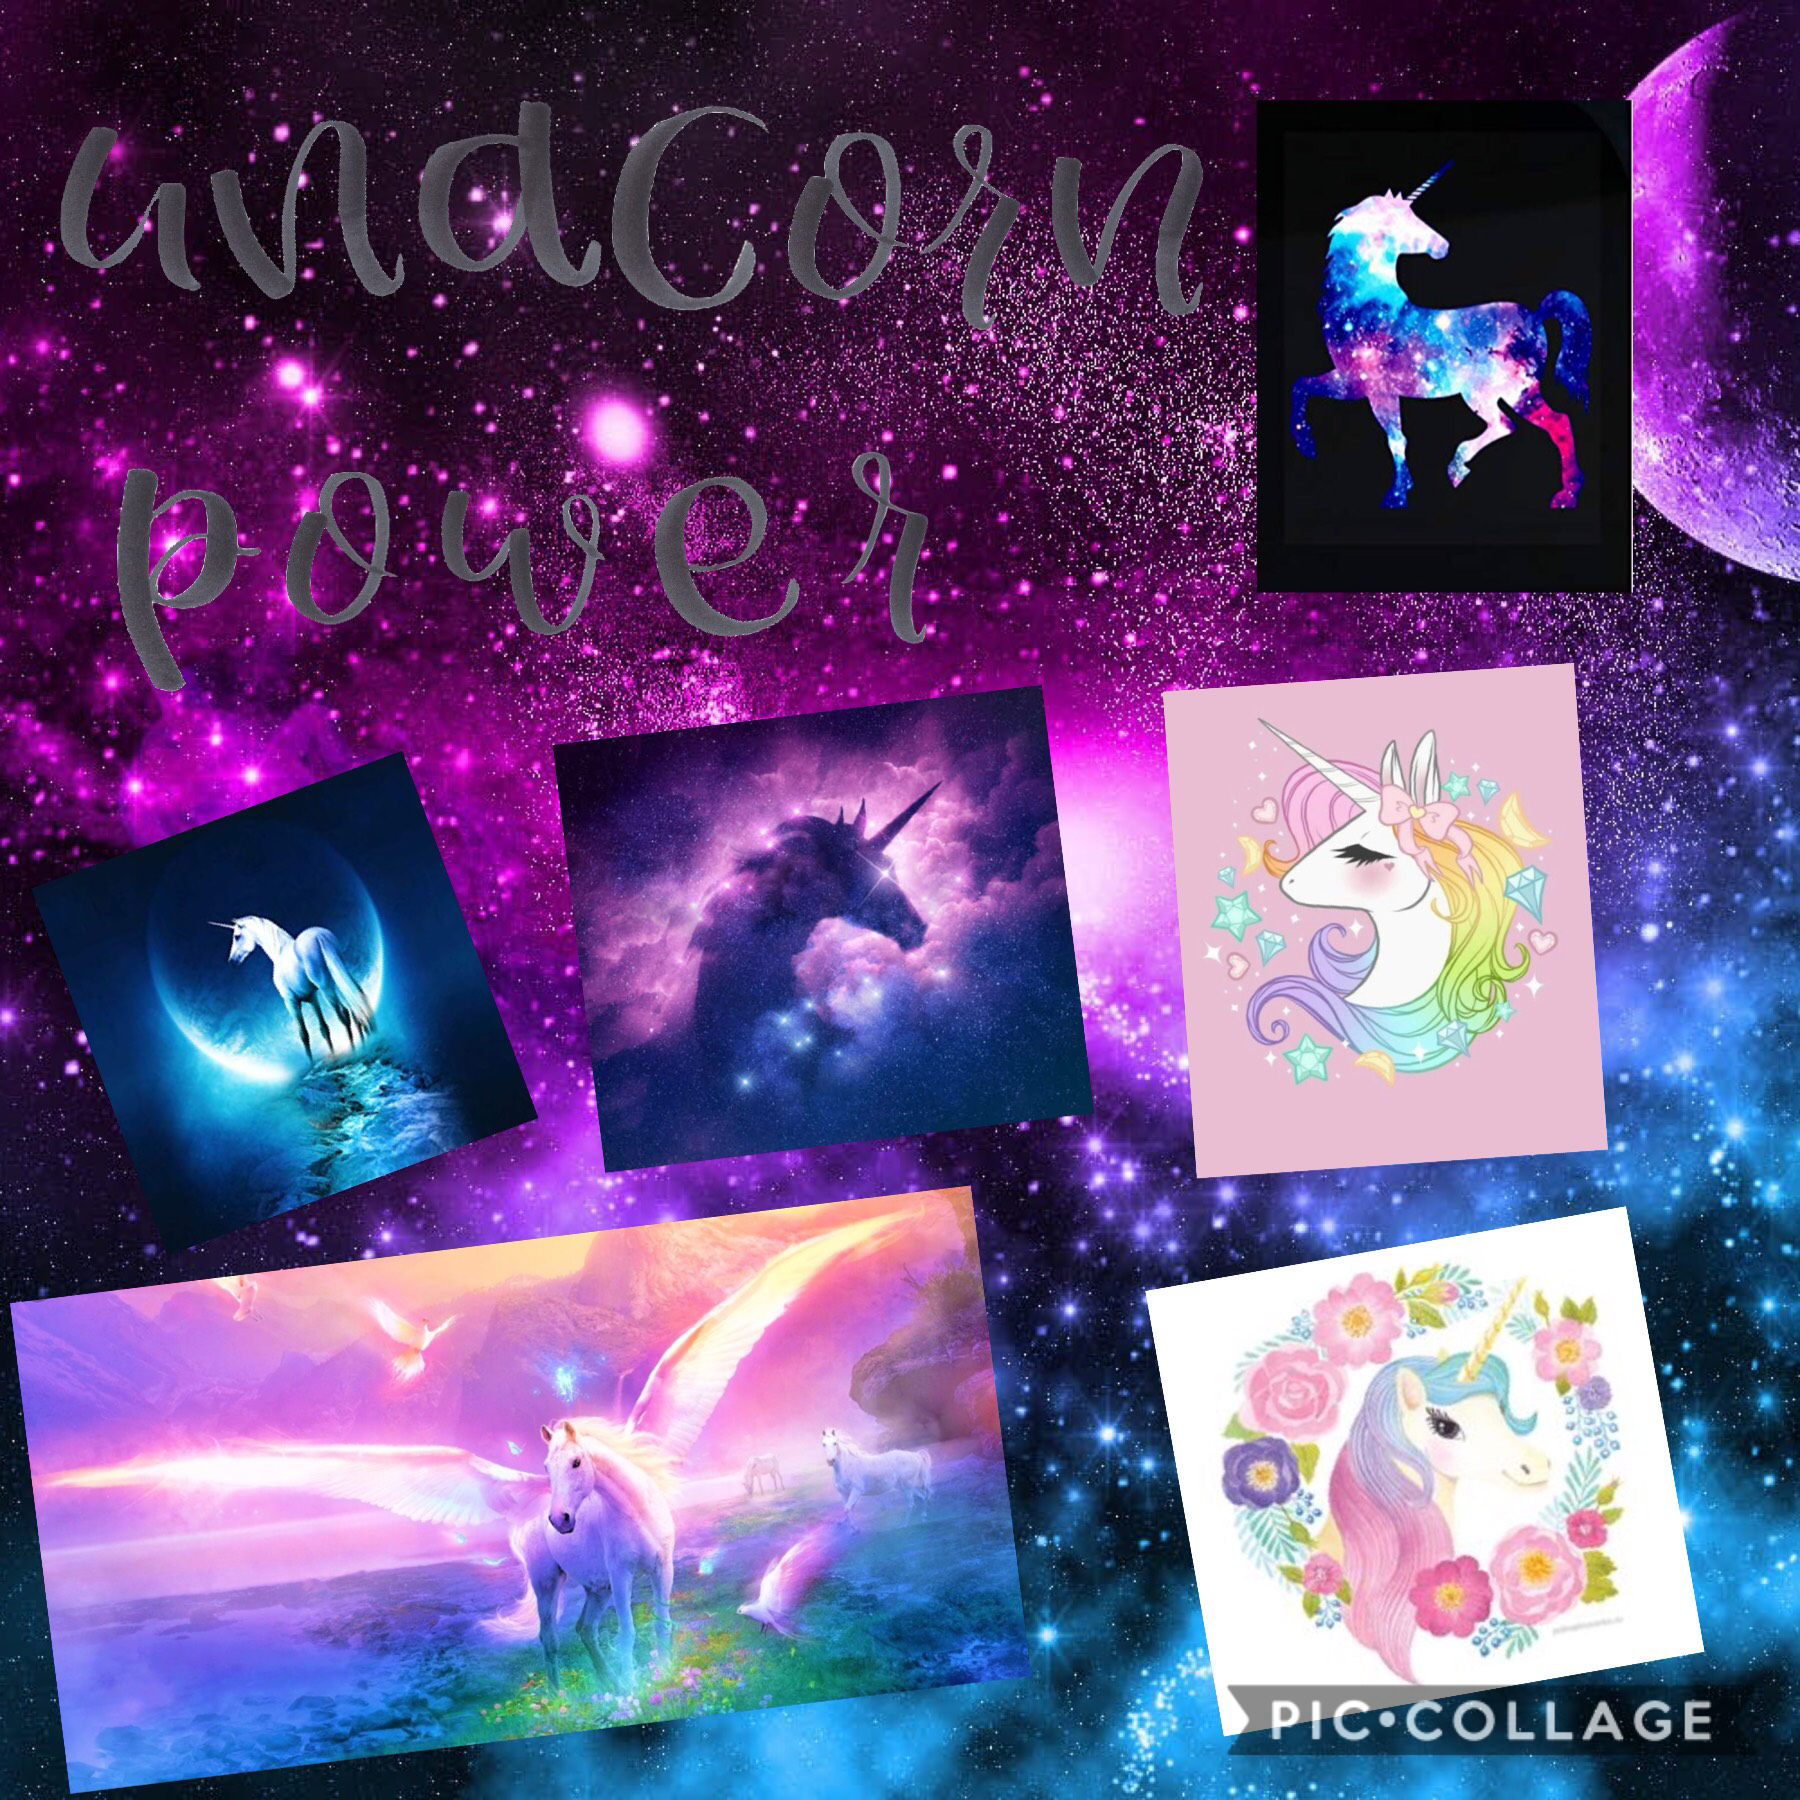 If you like this collage in the comments right #ilovetheseunicorns